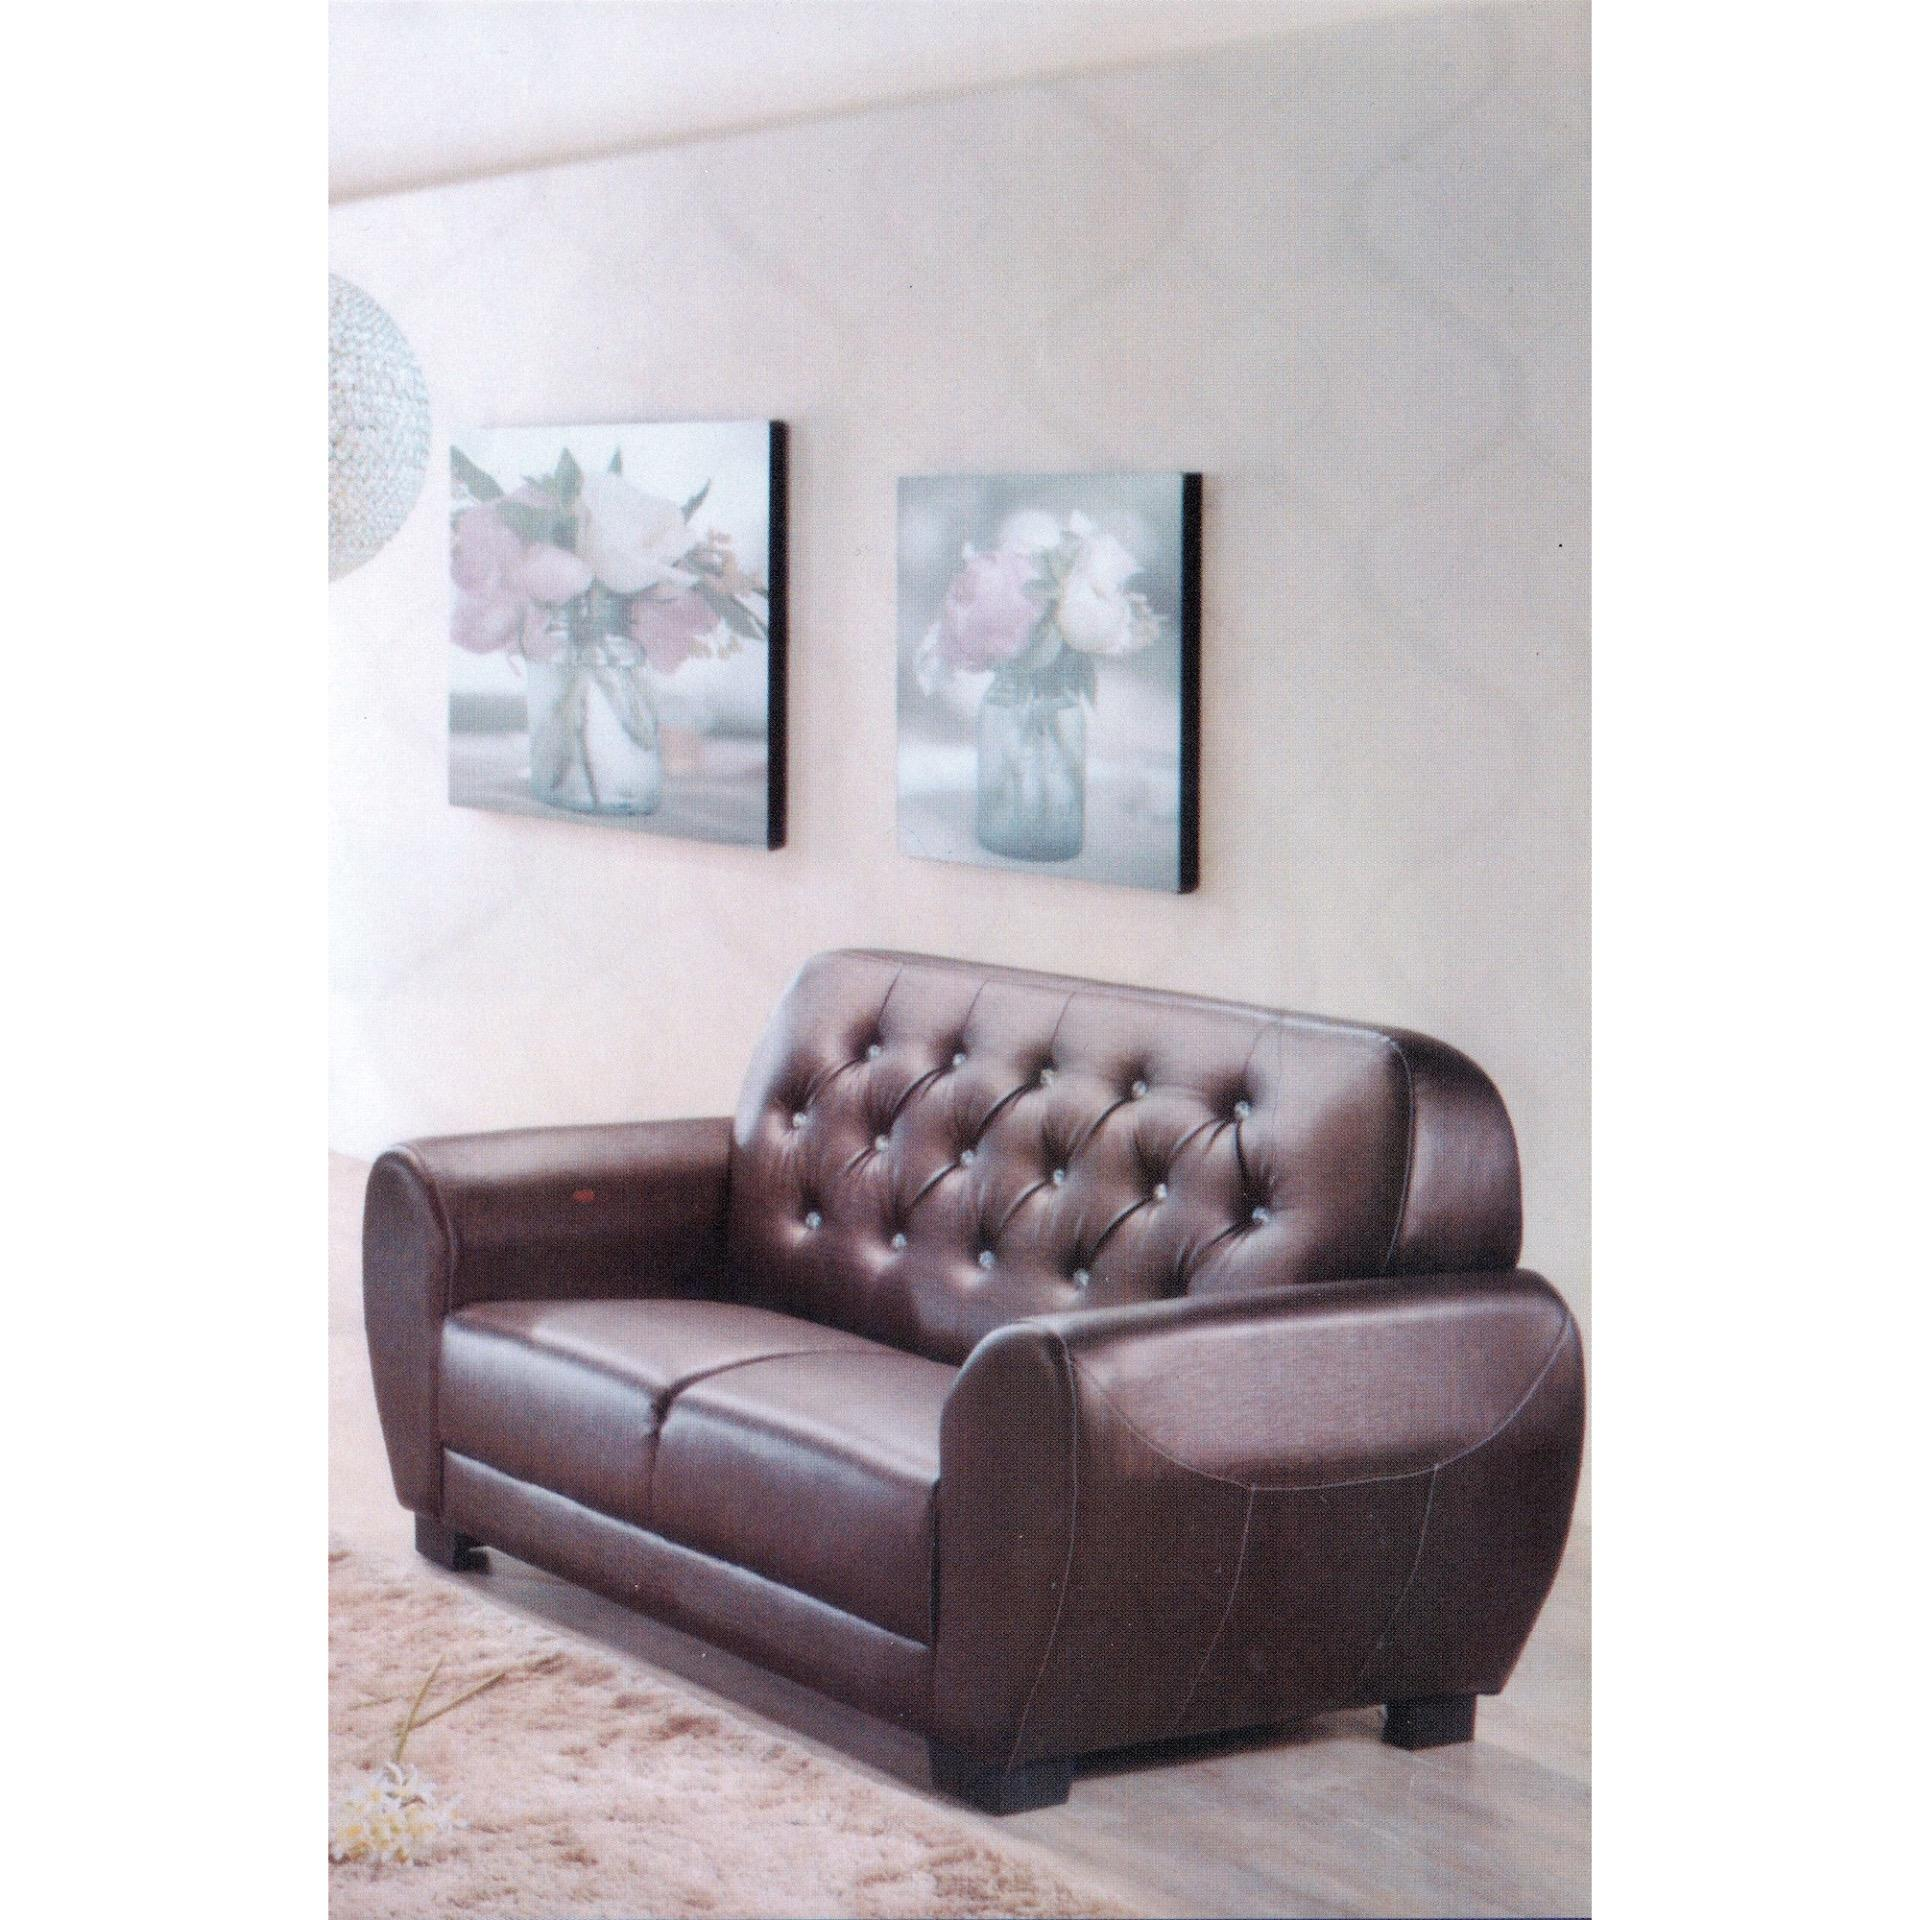 Relax Sofa Sofa 2 Seater Fully Leather Sofa Lounge Chair Relax Sofa